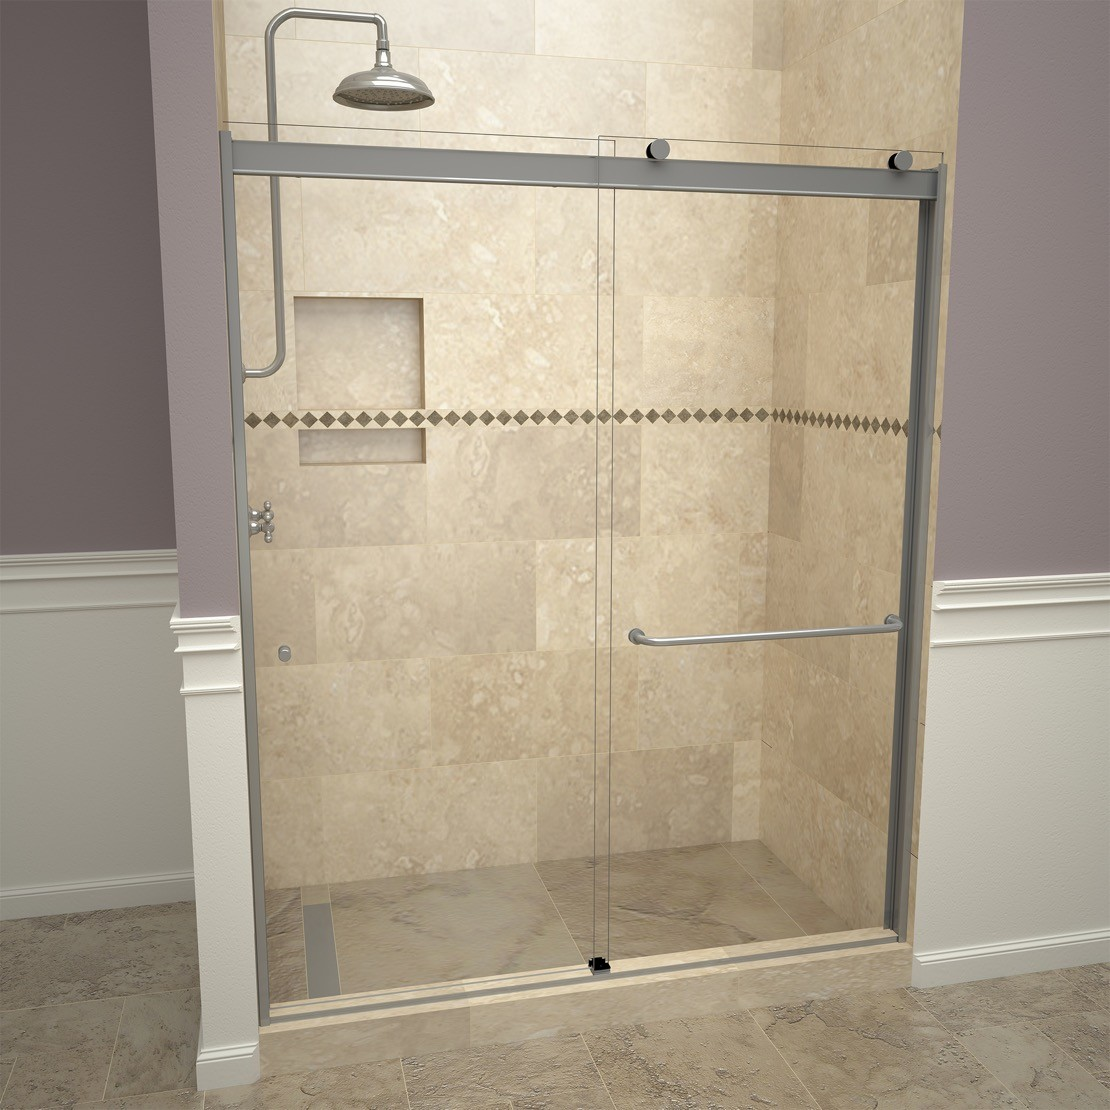 Base N Door Shower Kits Include Pan Door Niche And Flashing